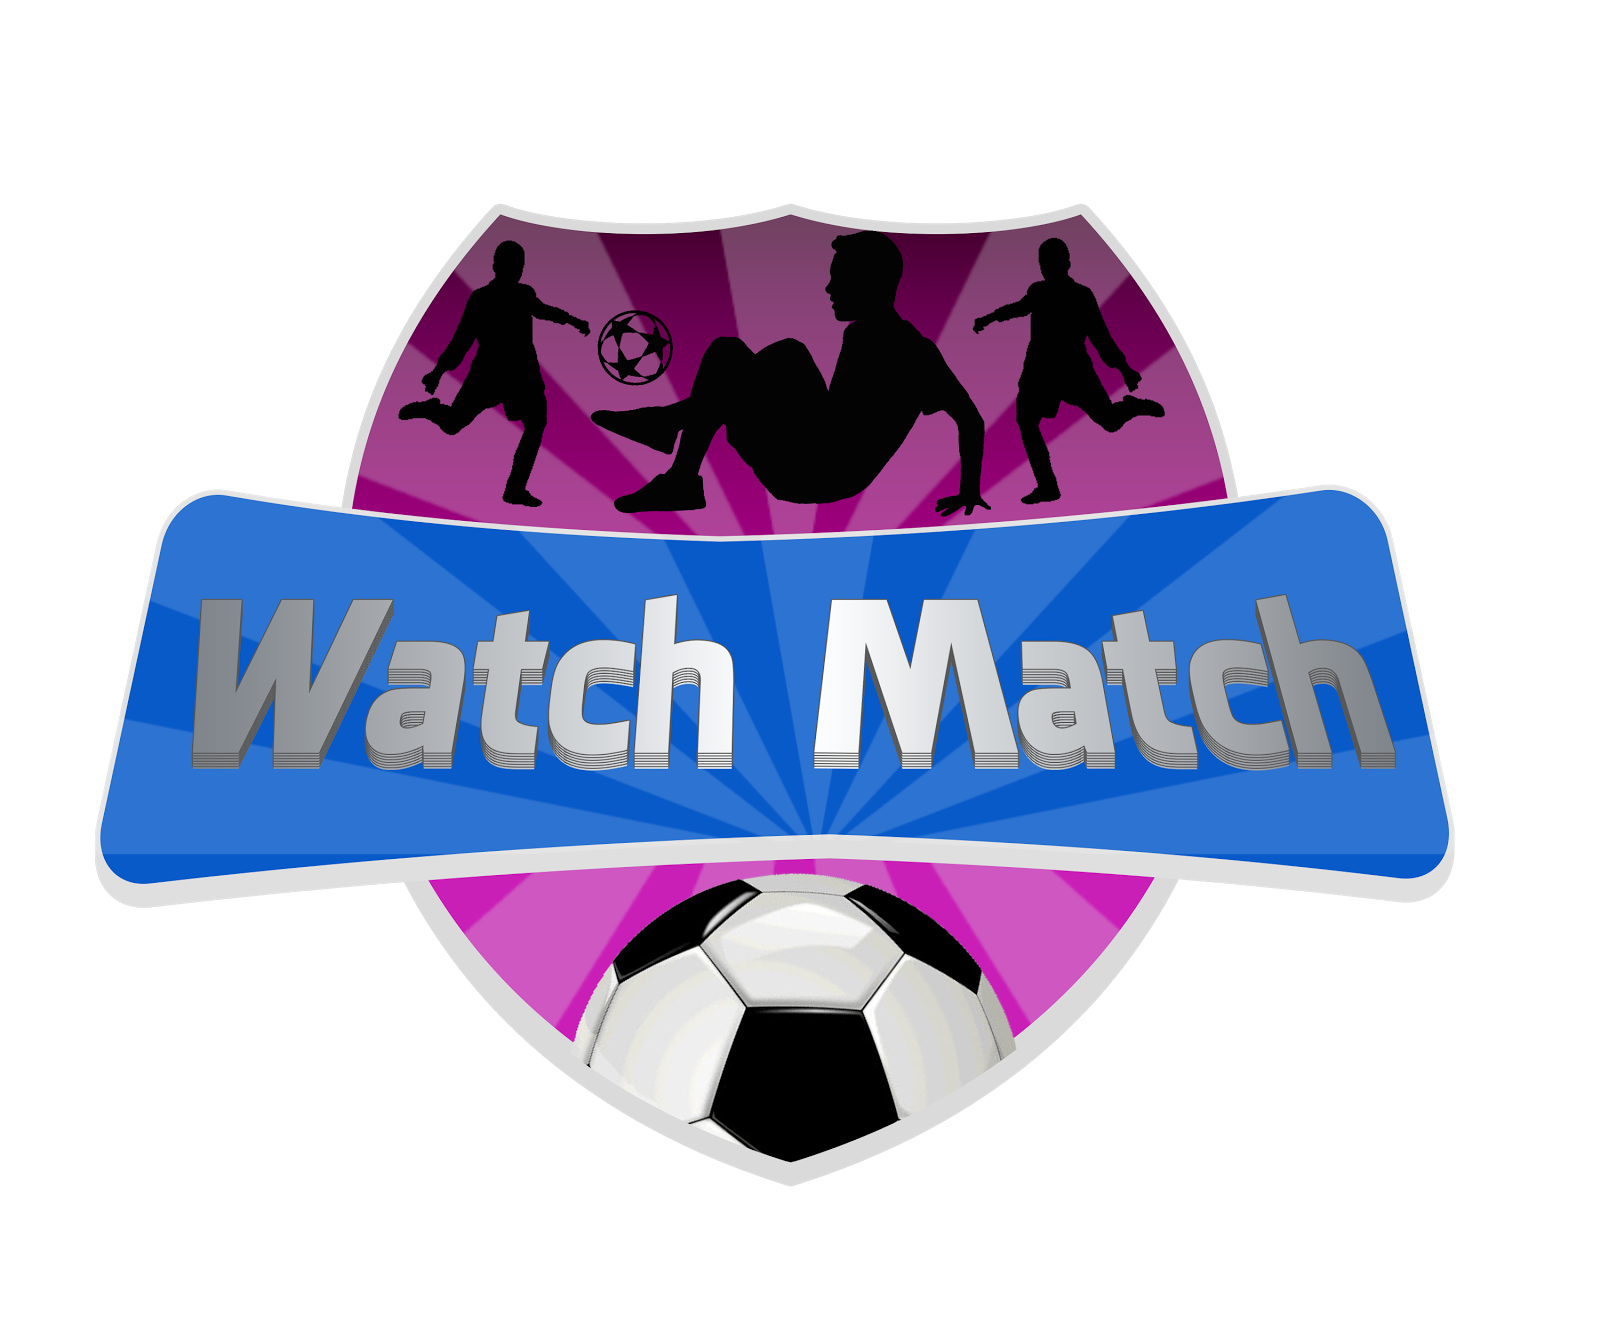 Watch Match HD